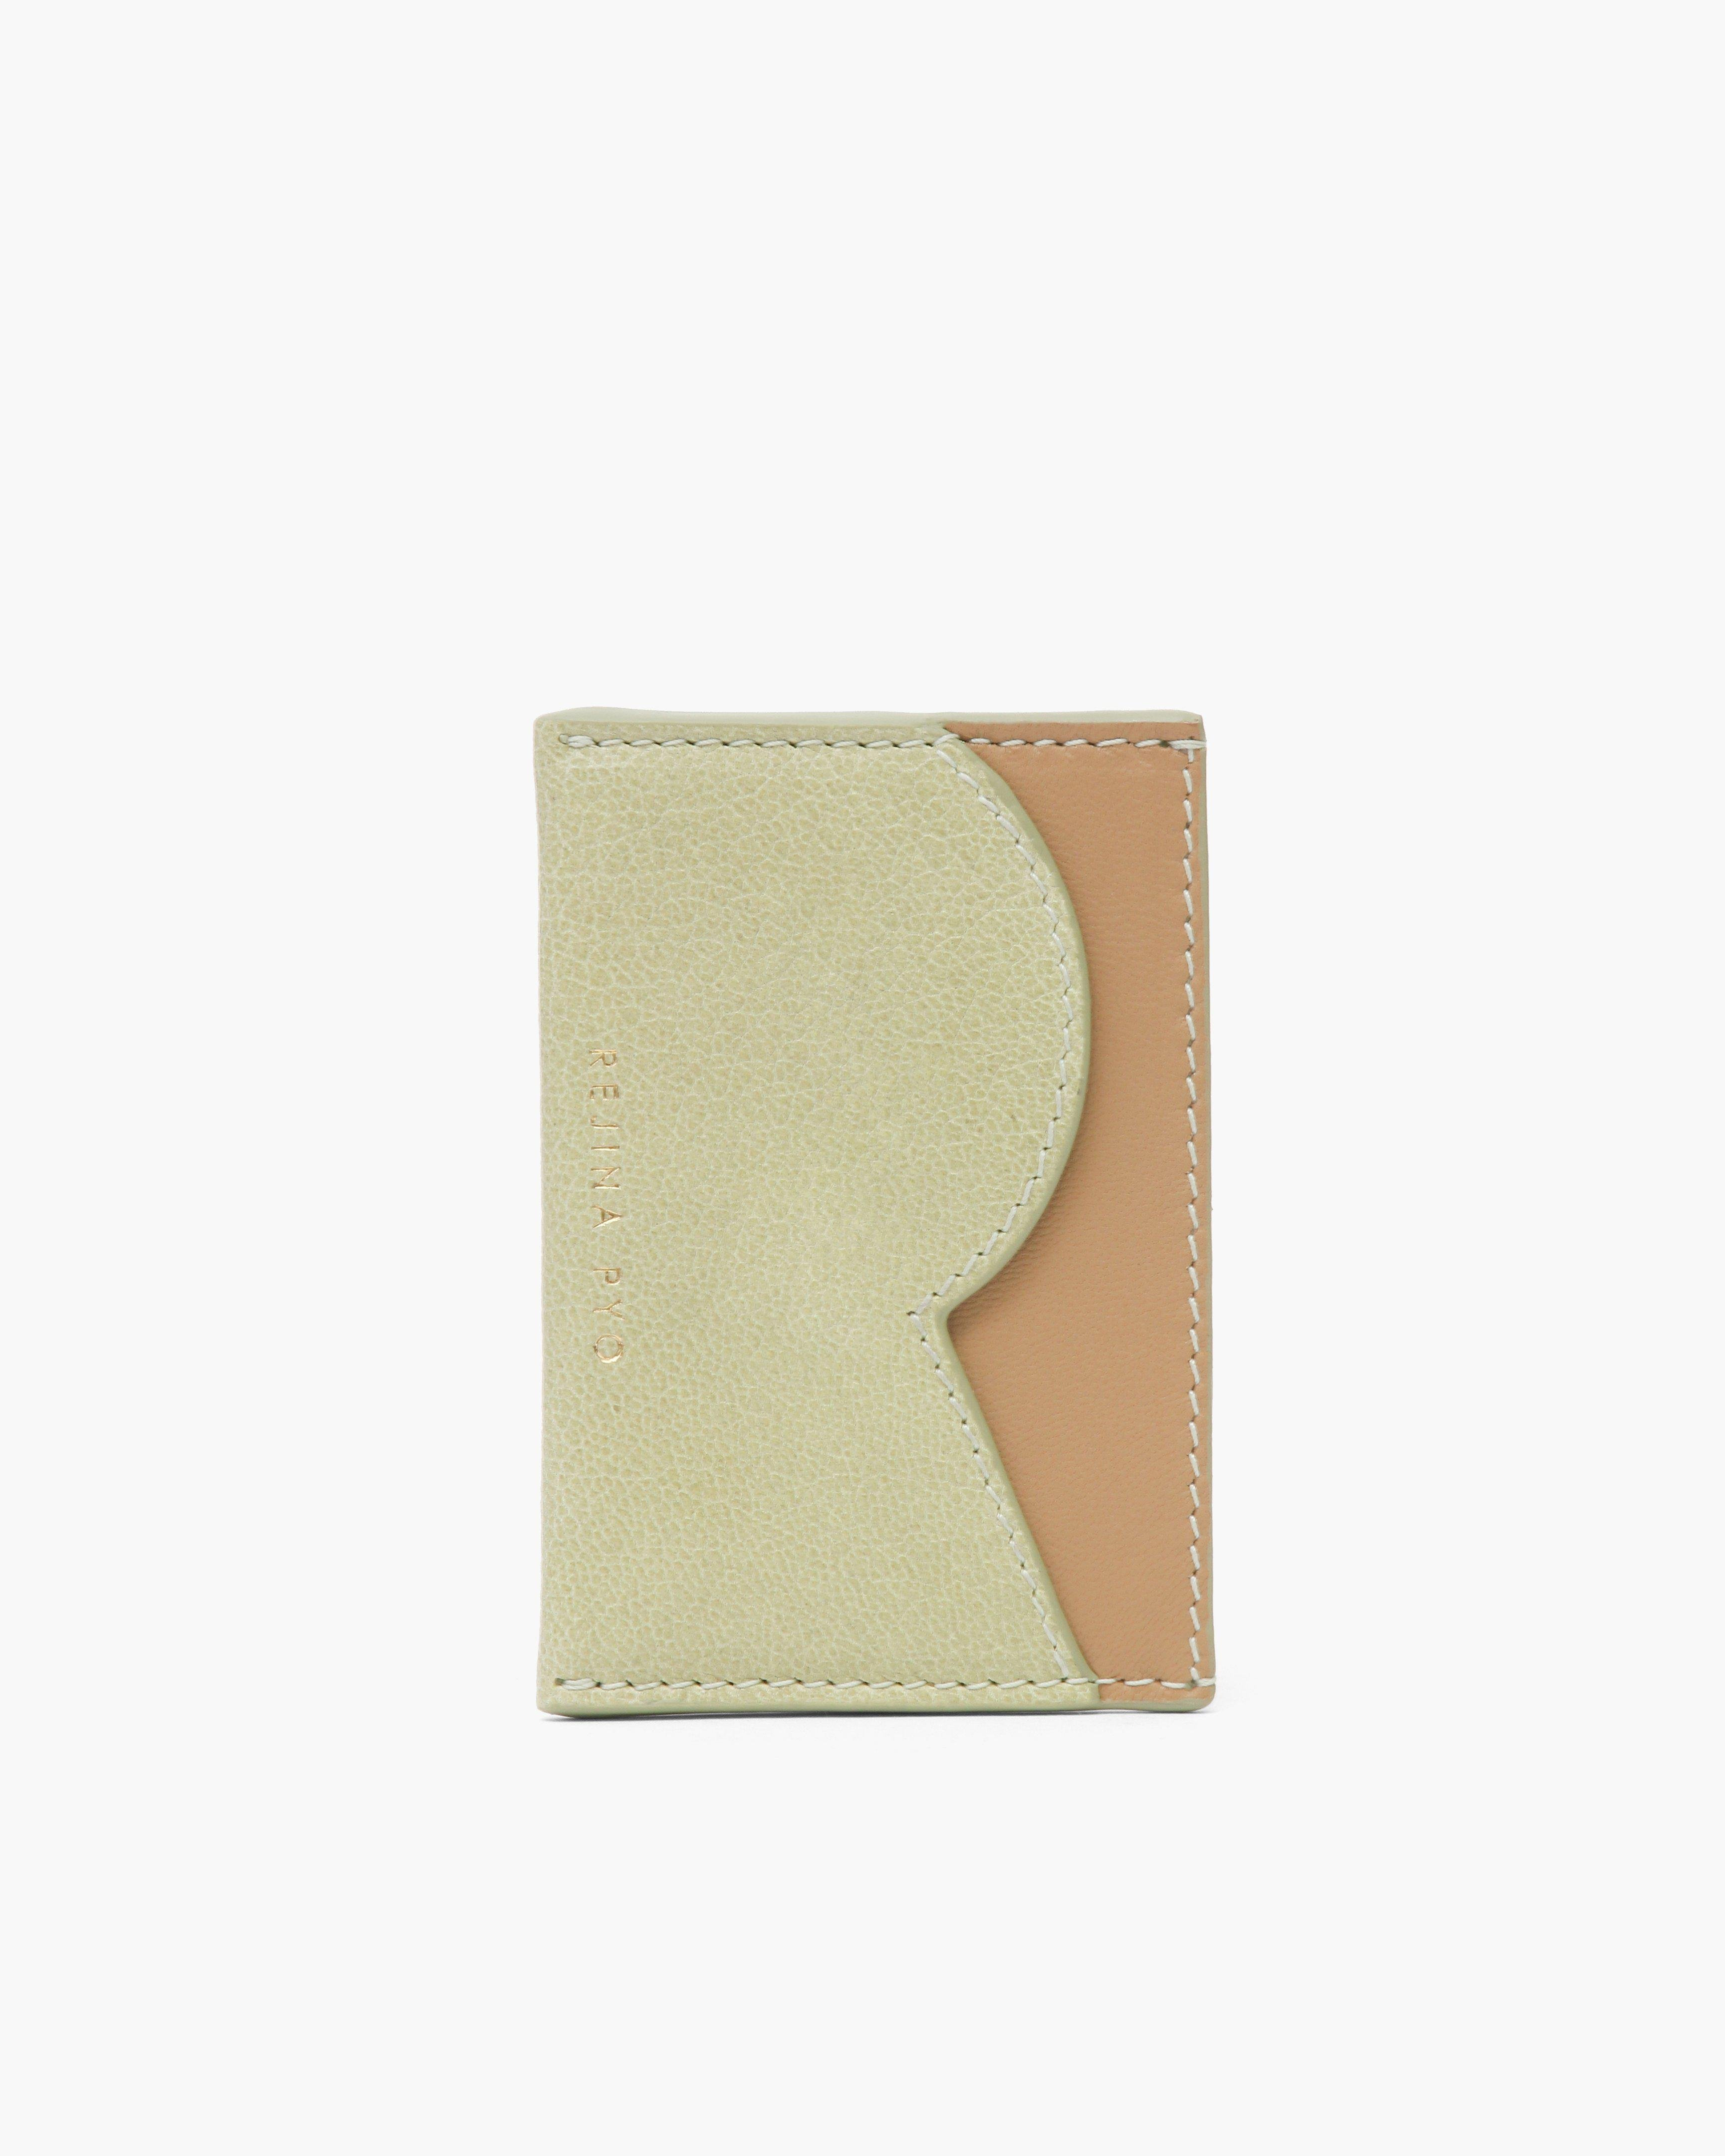 RP Card Holder Leather Citrus Green + Nappa Almond